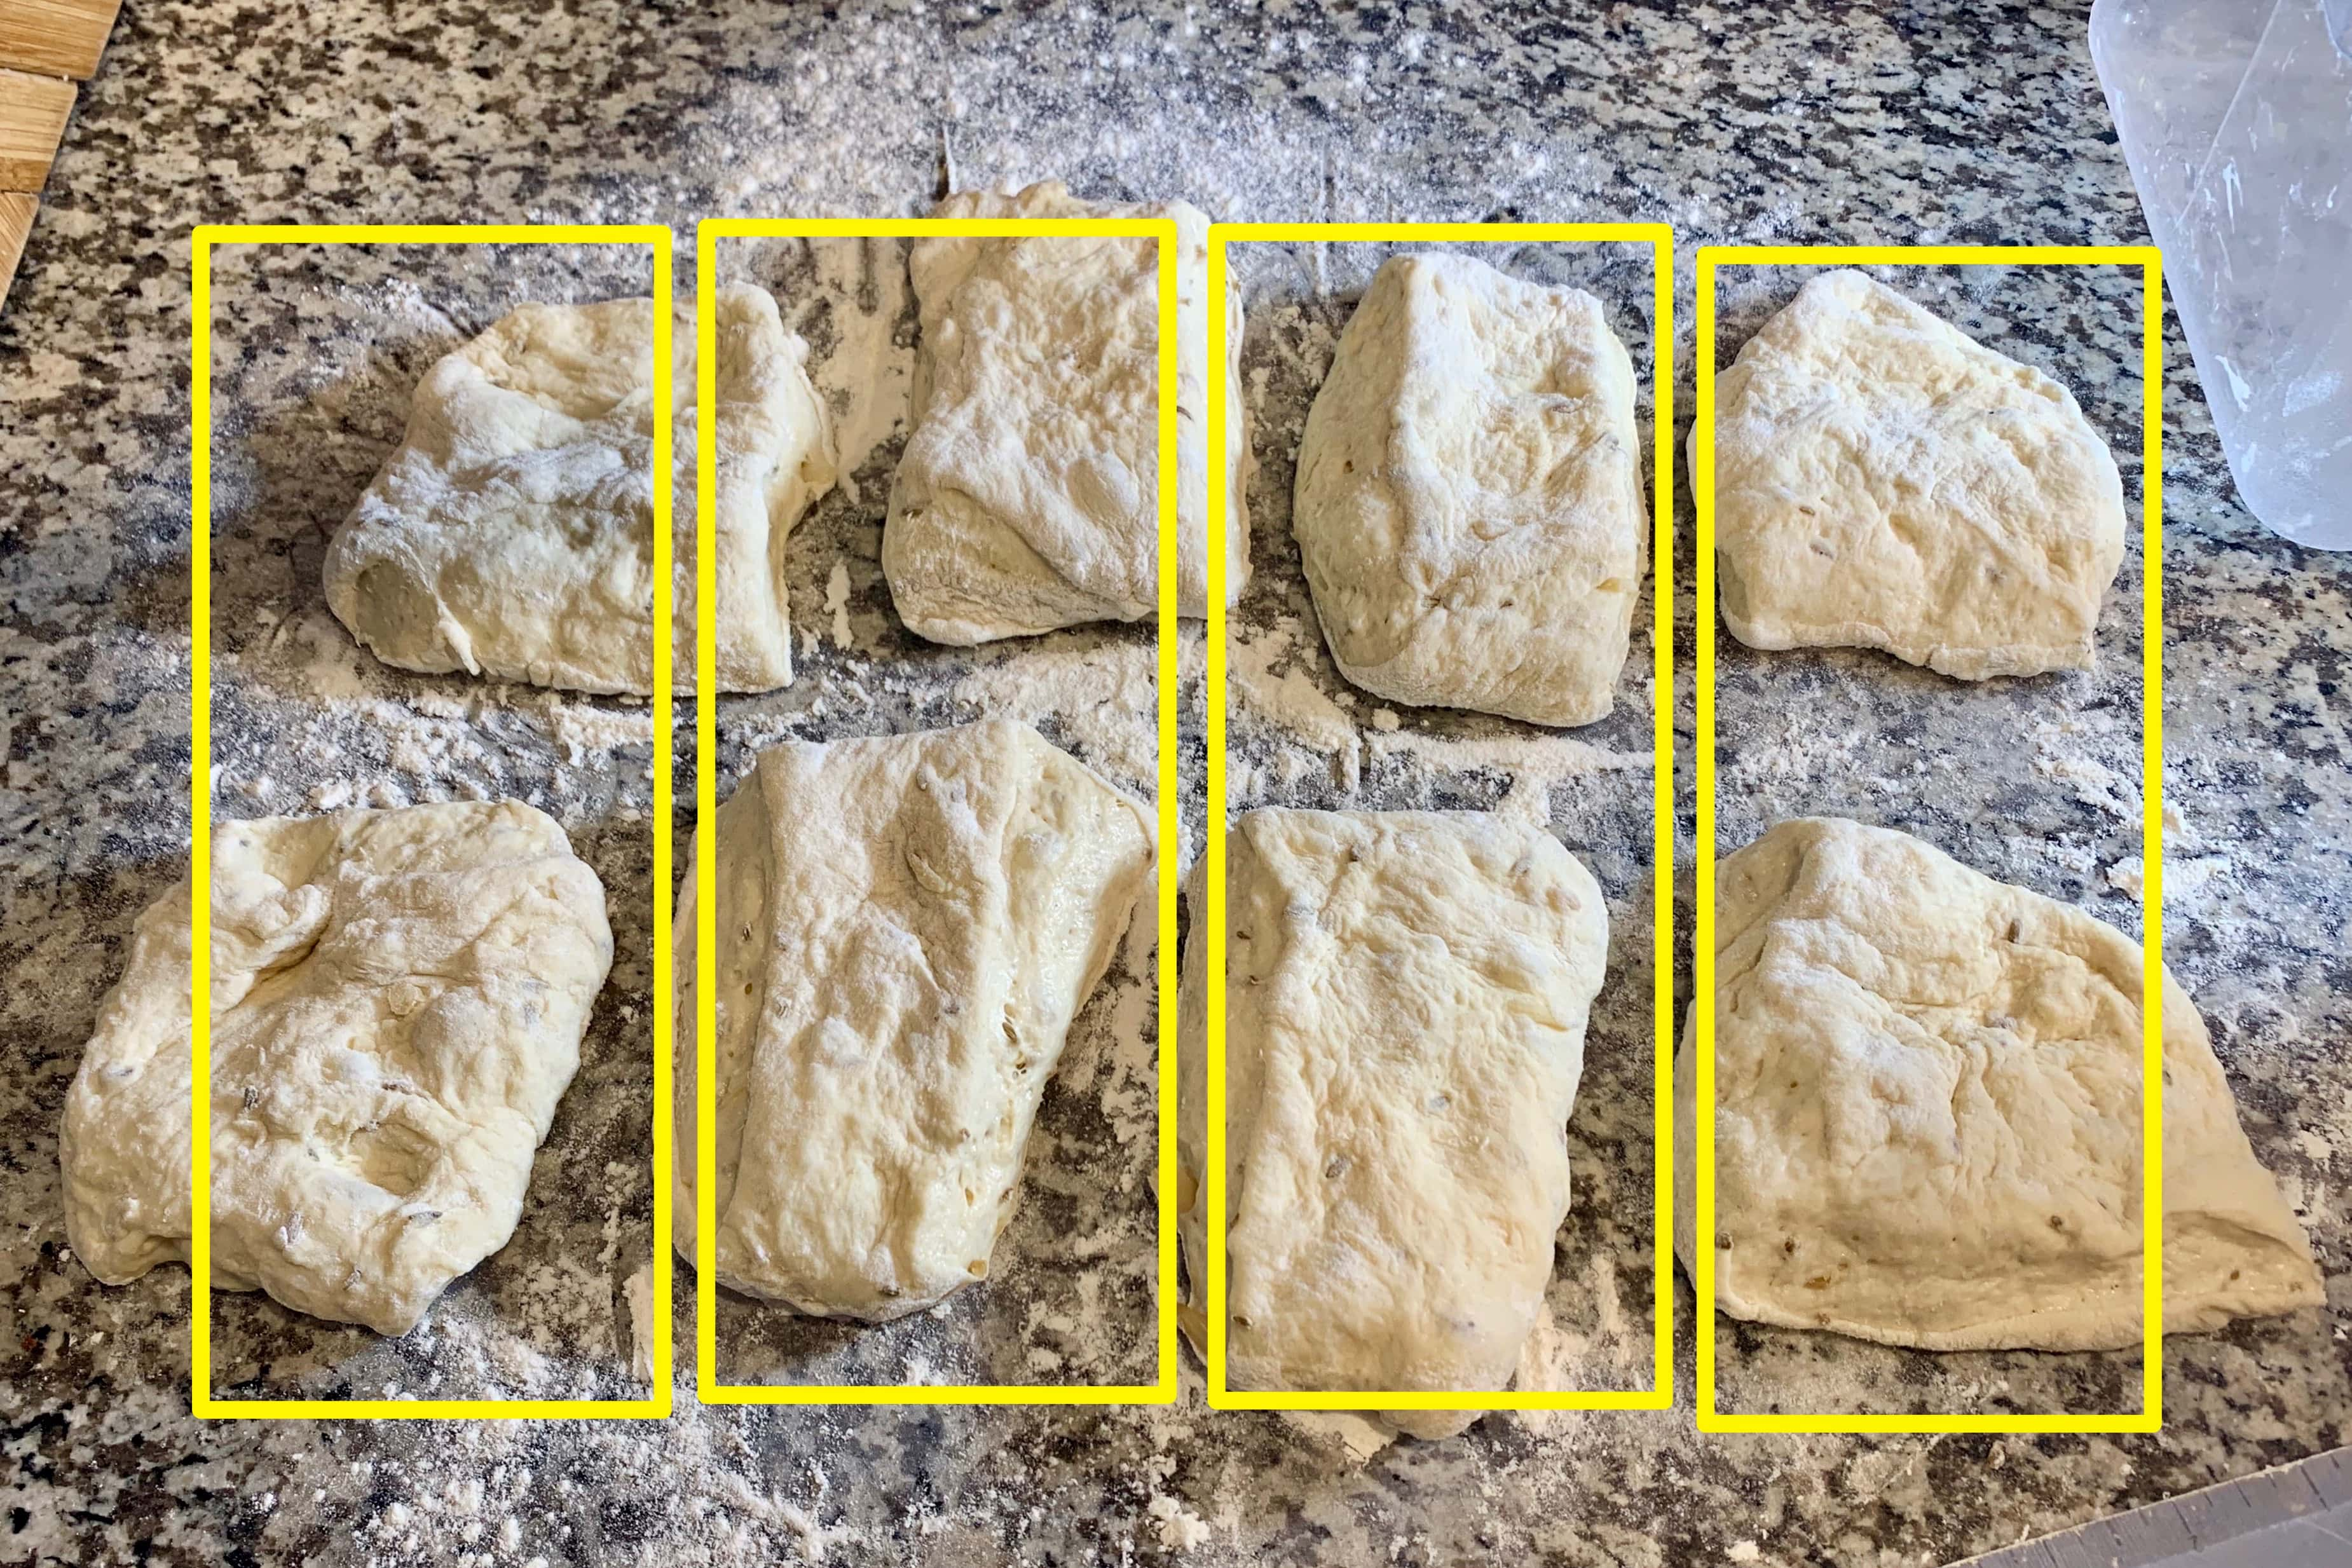 the flattened ciabatta dough cut into 8 equal pieces lies on the counter. overtop the image has been drawn four large, vertical yellow rectangles showing that you can cut the dough into four equal pieces instead.